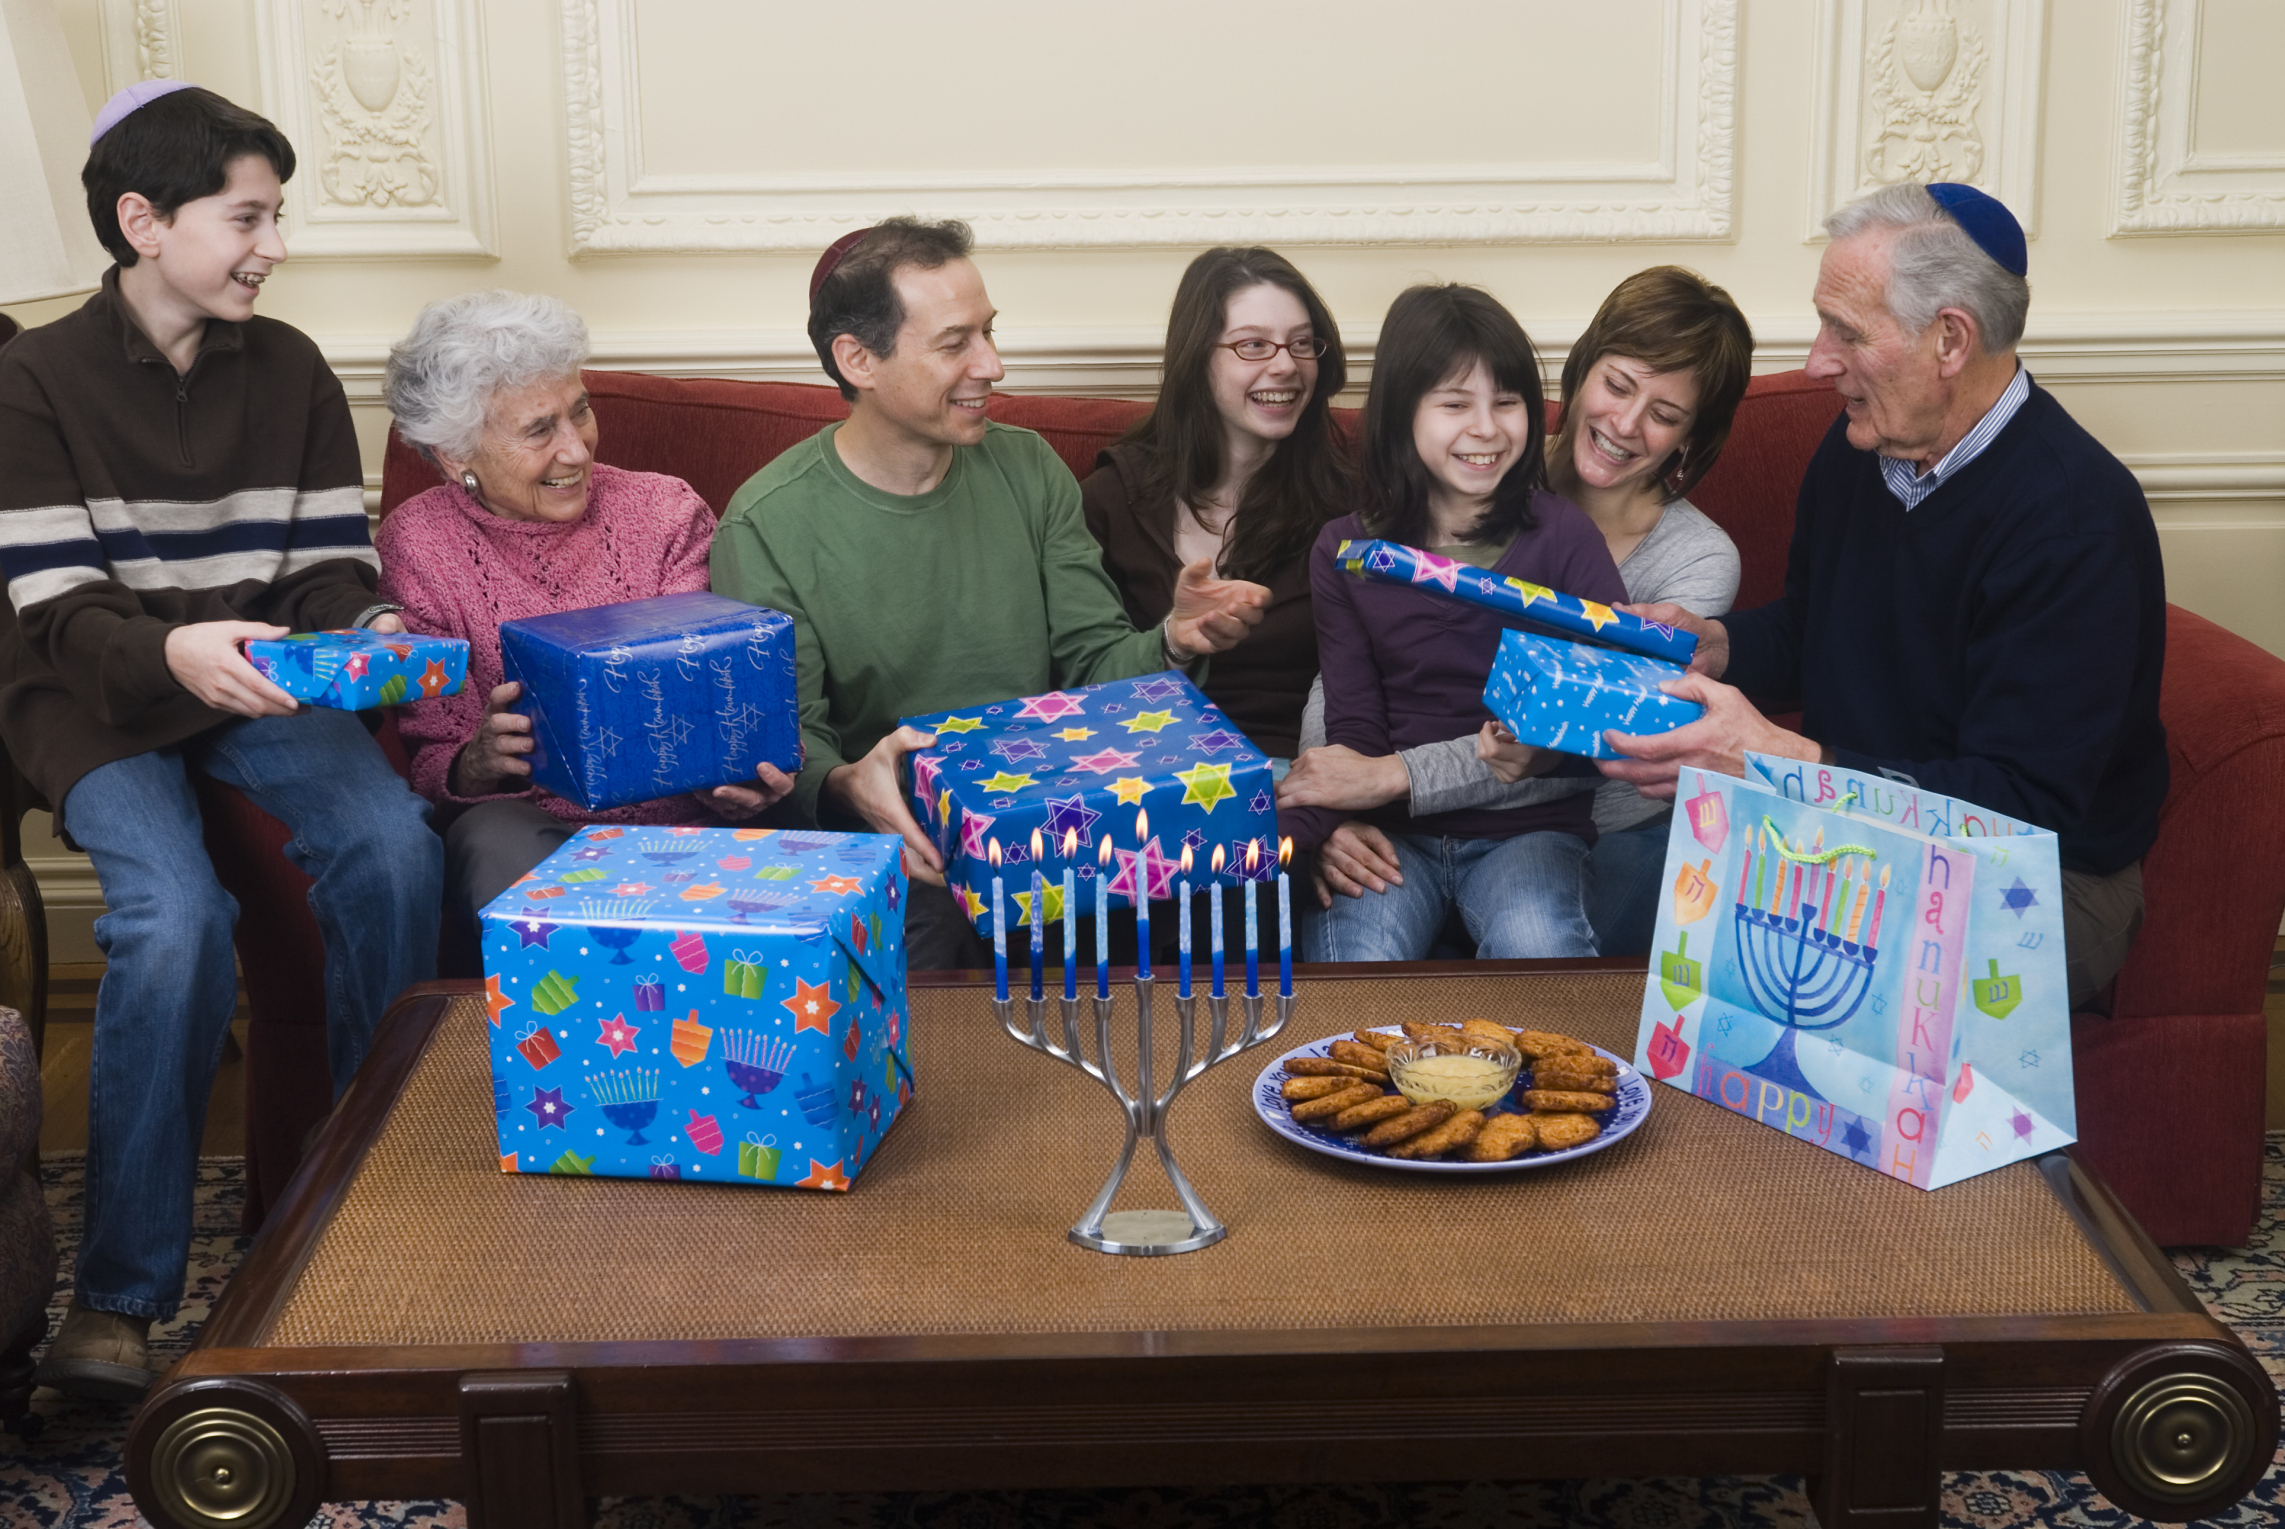 10 things that happen every Chanukah